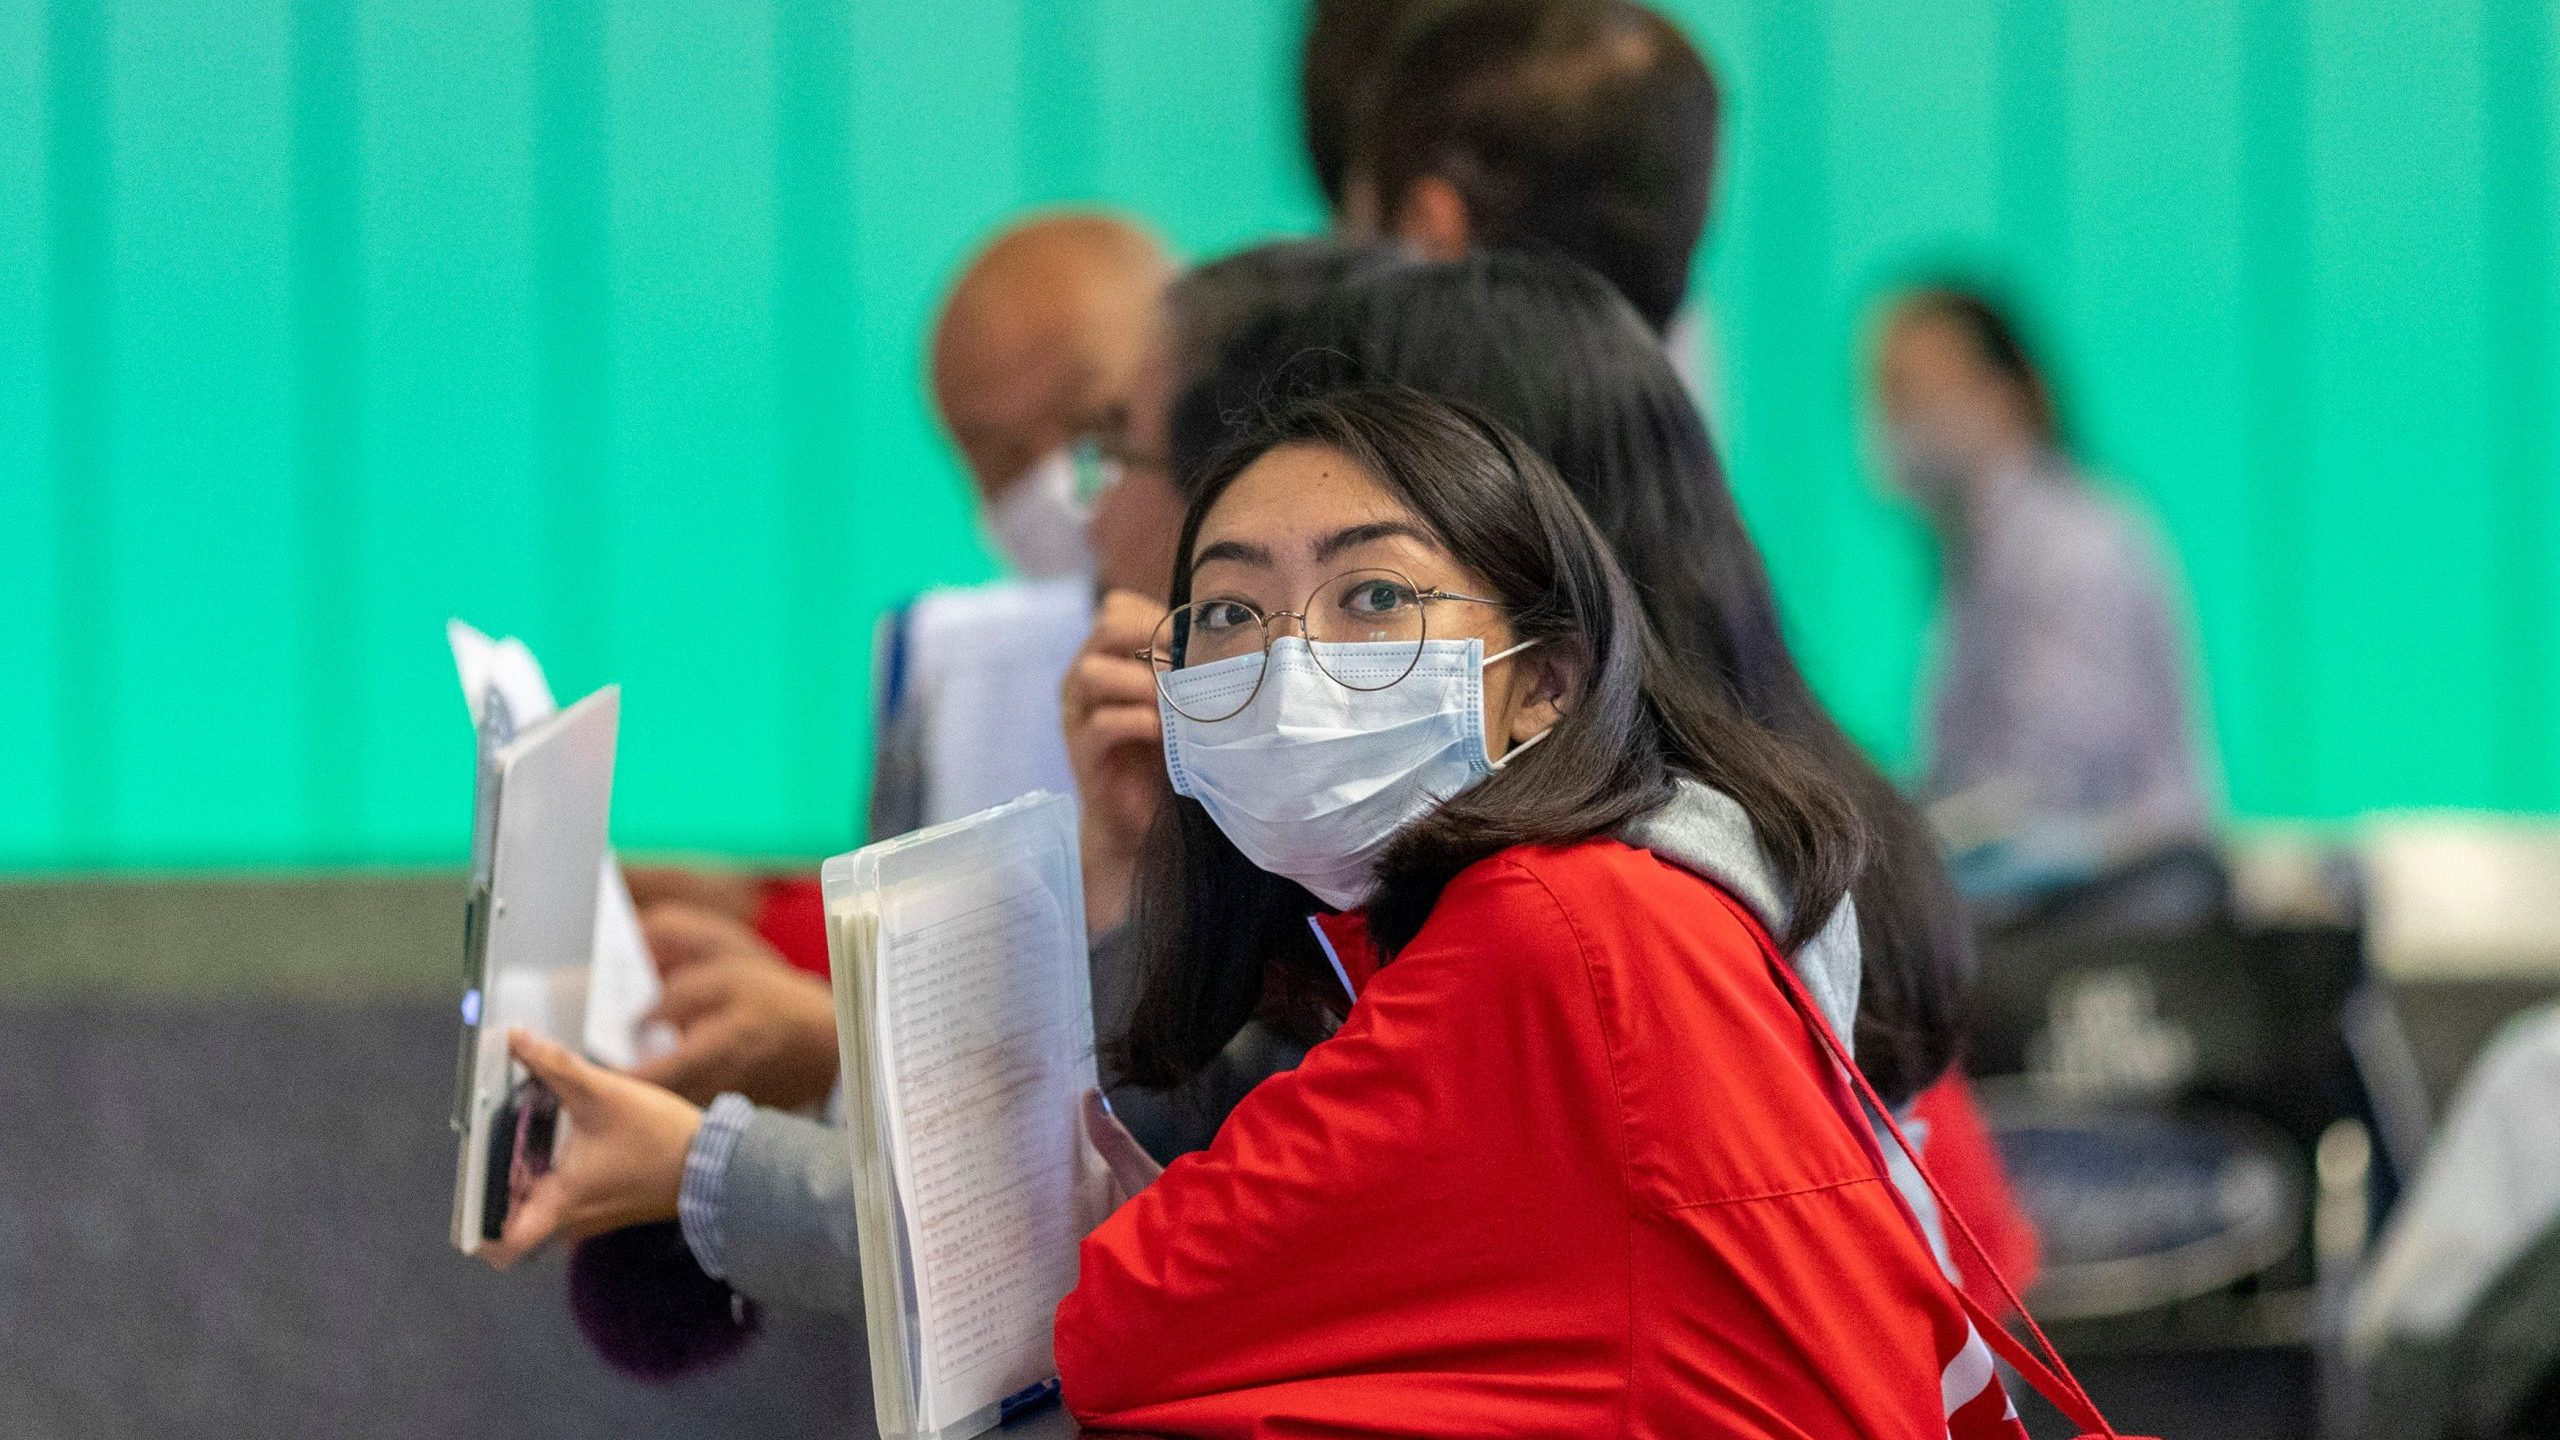 A woman waiting for an international traveler to arrive to LAX Tom Bradley International Terminal wears a medical mask for protection against the coronavirus outbreak on February 2, 2020 in Los Angeles. (Credit: David McNew/Getty Images North America/Getty Images)